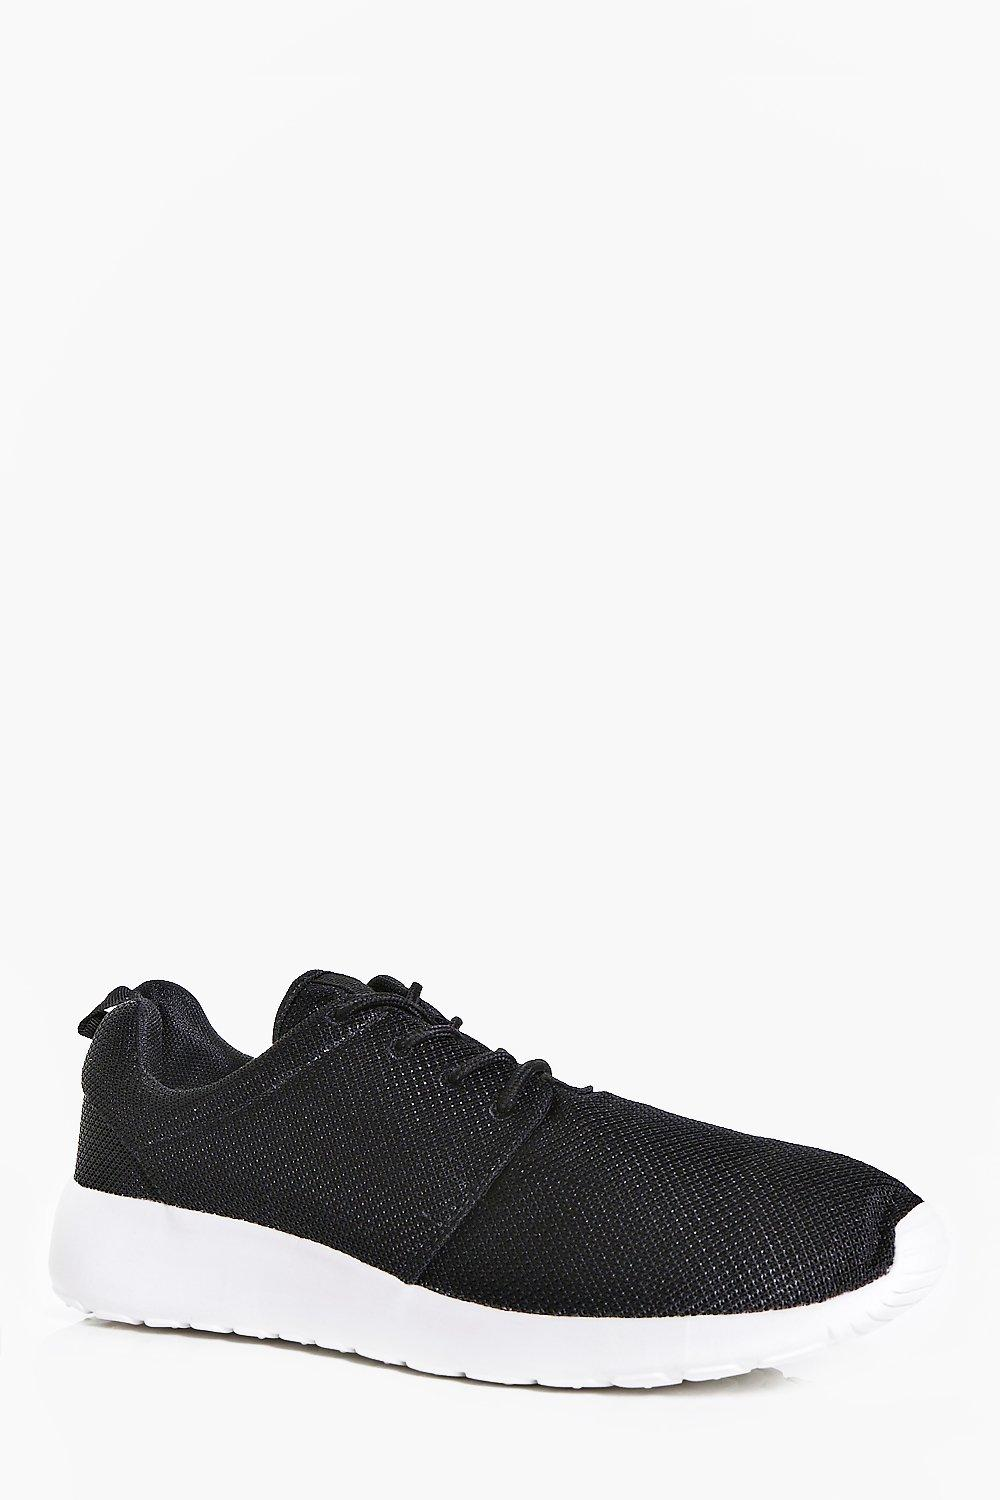 Black Lace Up Running Trainers